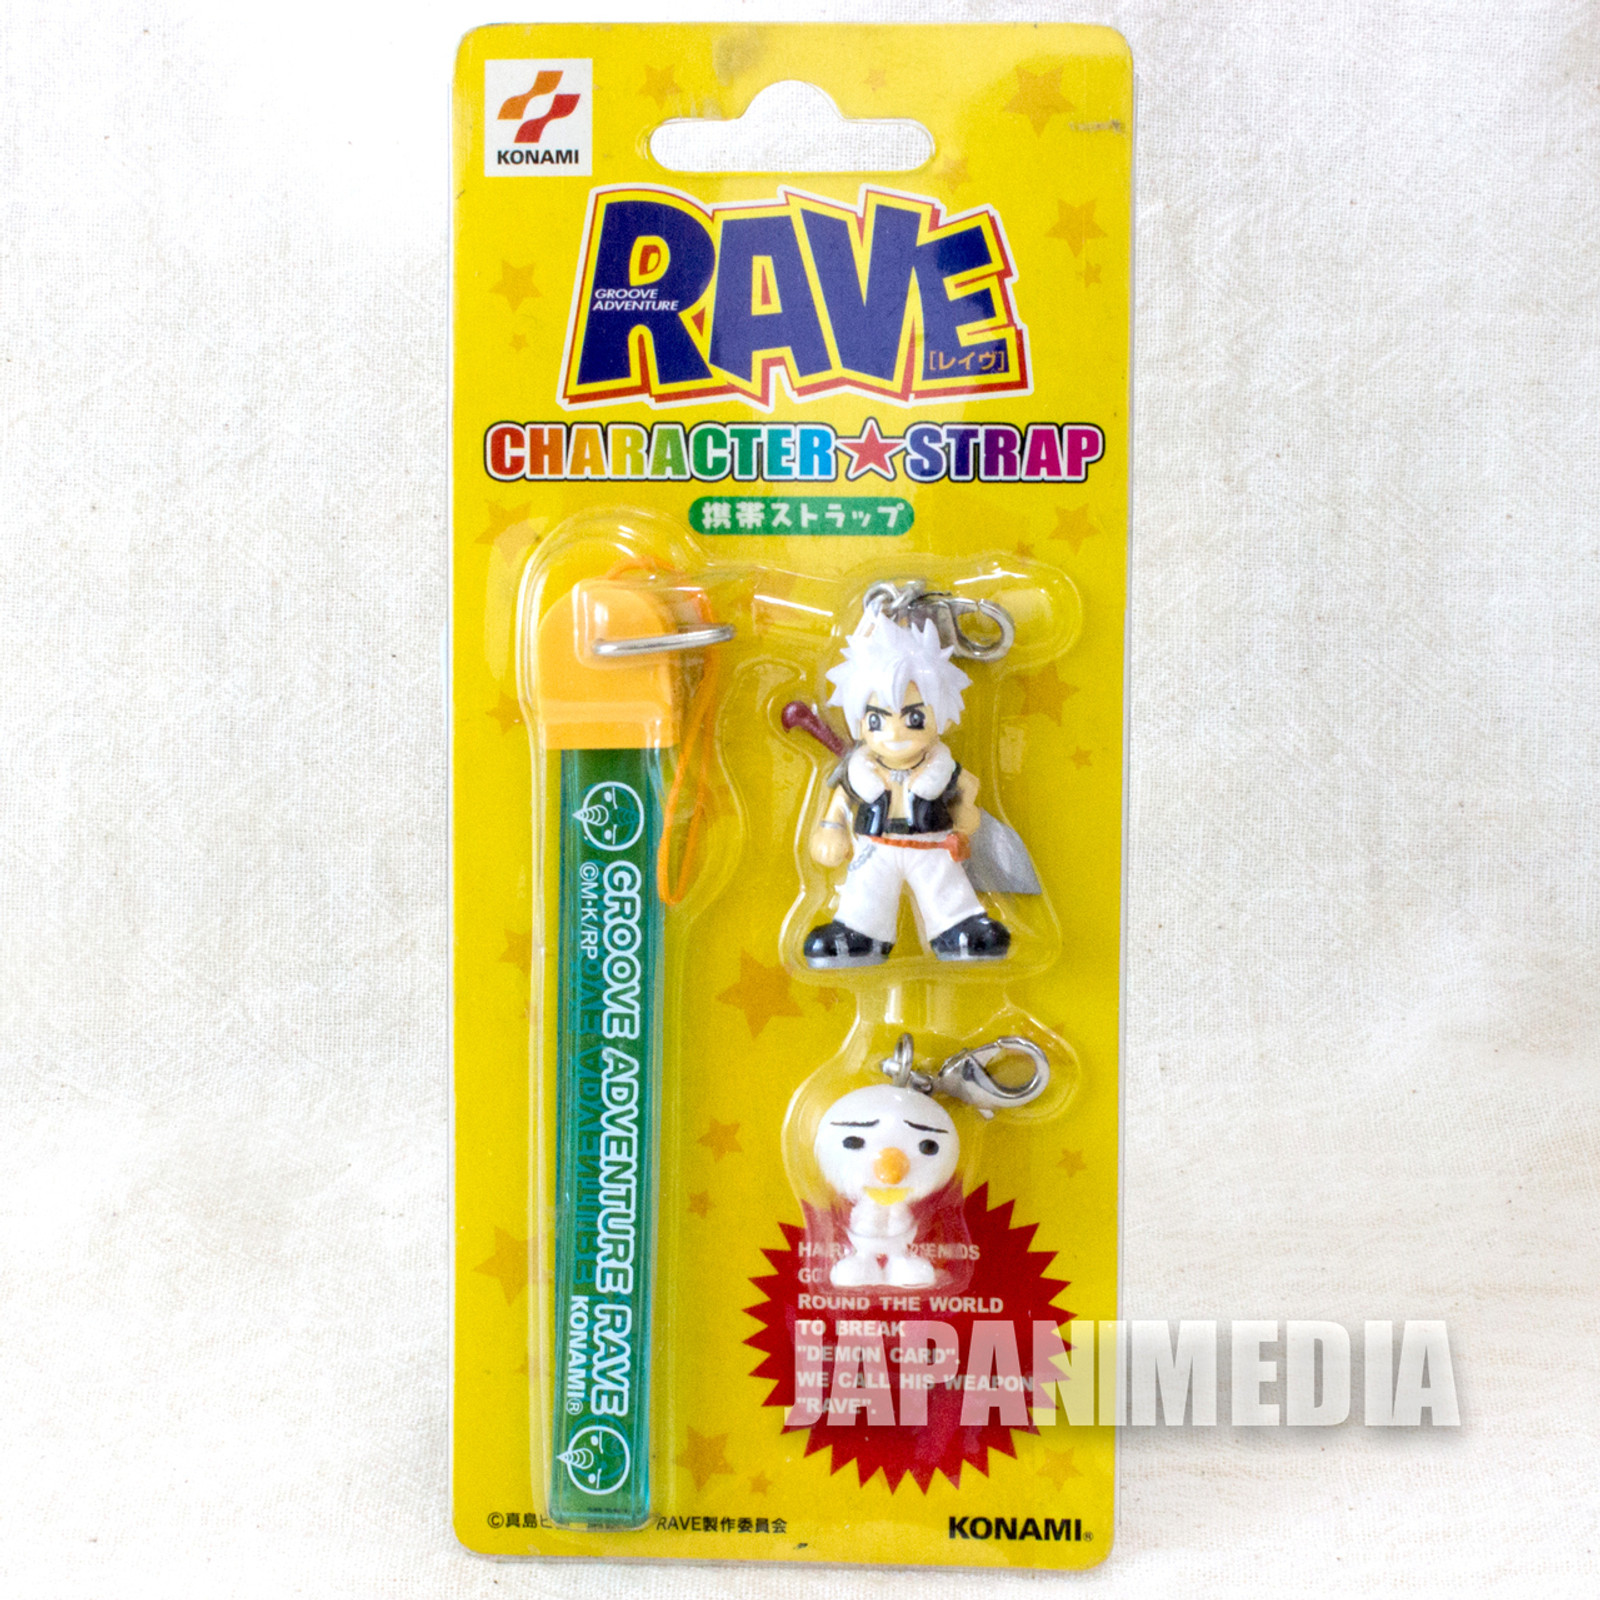 RAVE Master Groove Adventure Haru Glory & Plue Figure Strap Konami JAPAN ANIME